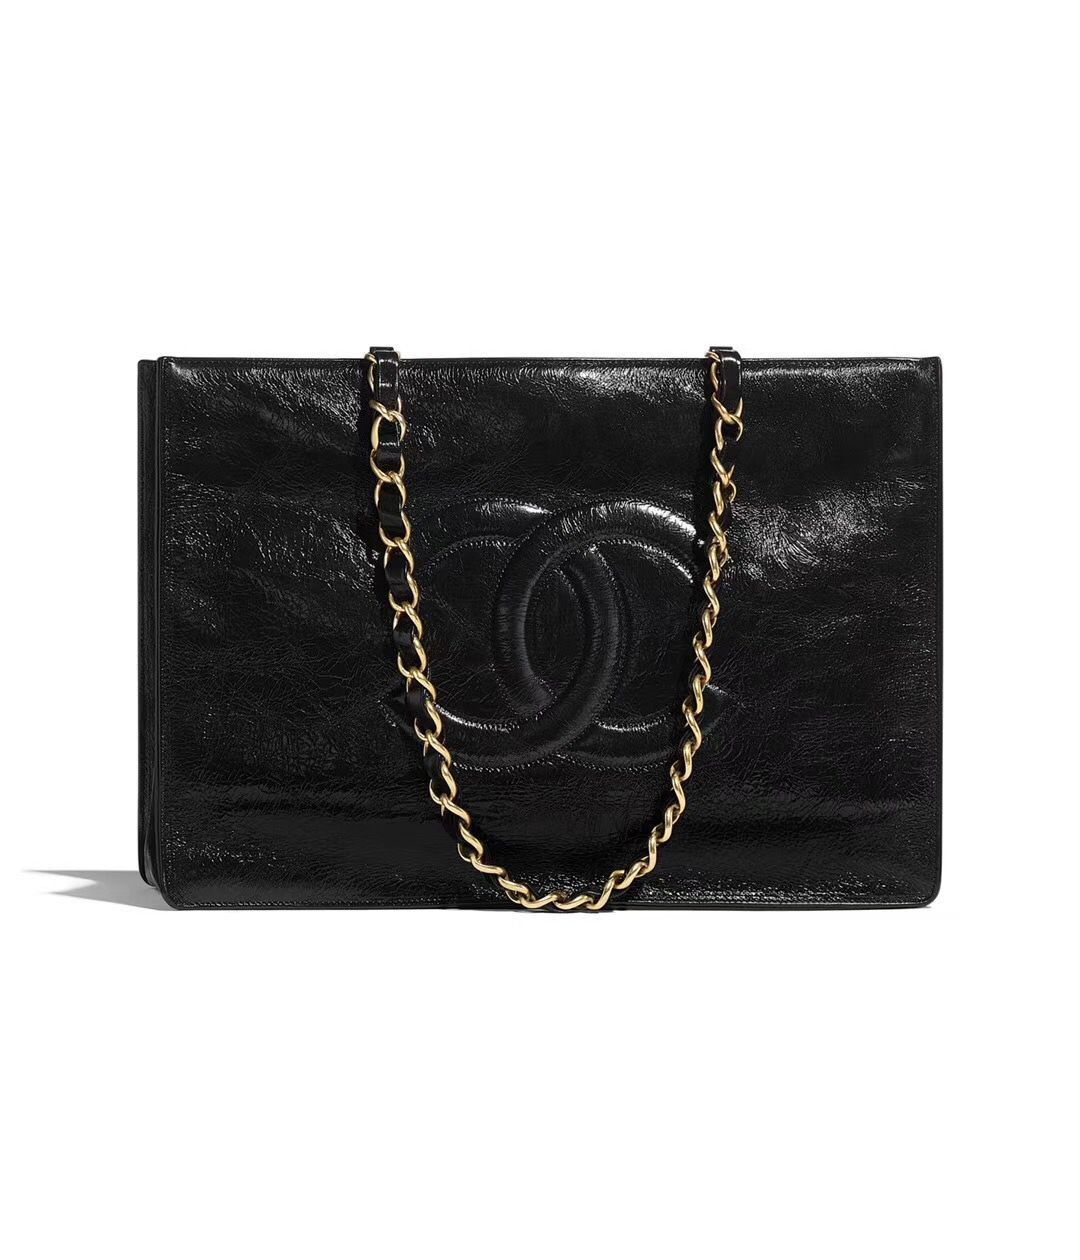 Chanel Original Leather Tote Shopping Bag AS1943 Black